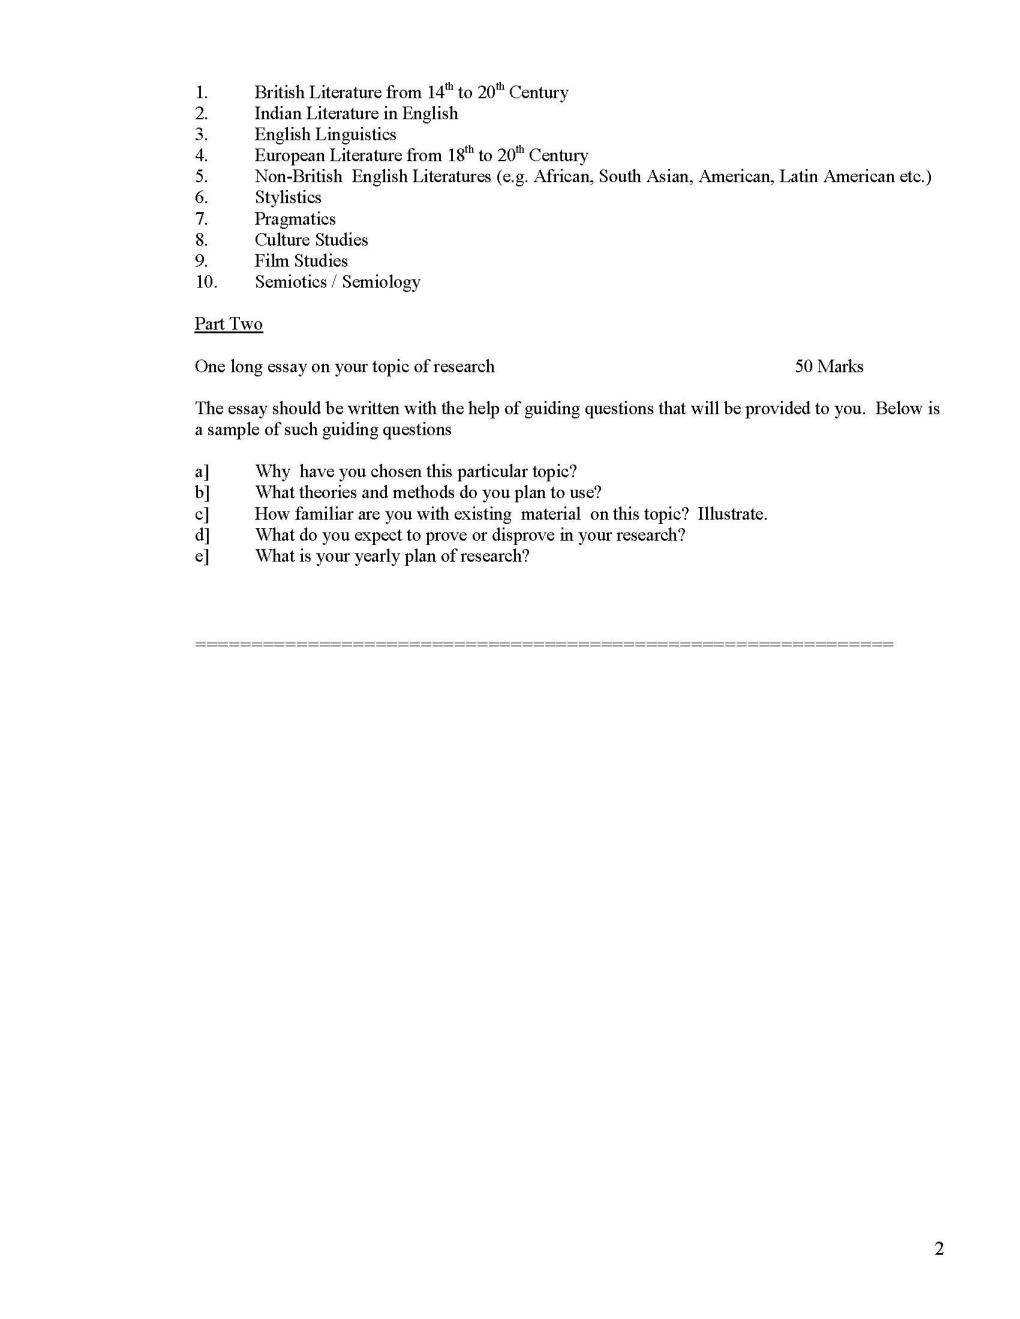 phd thesis in library science in india